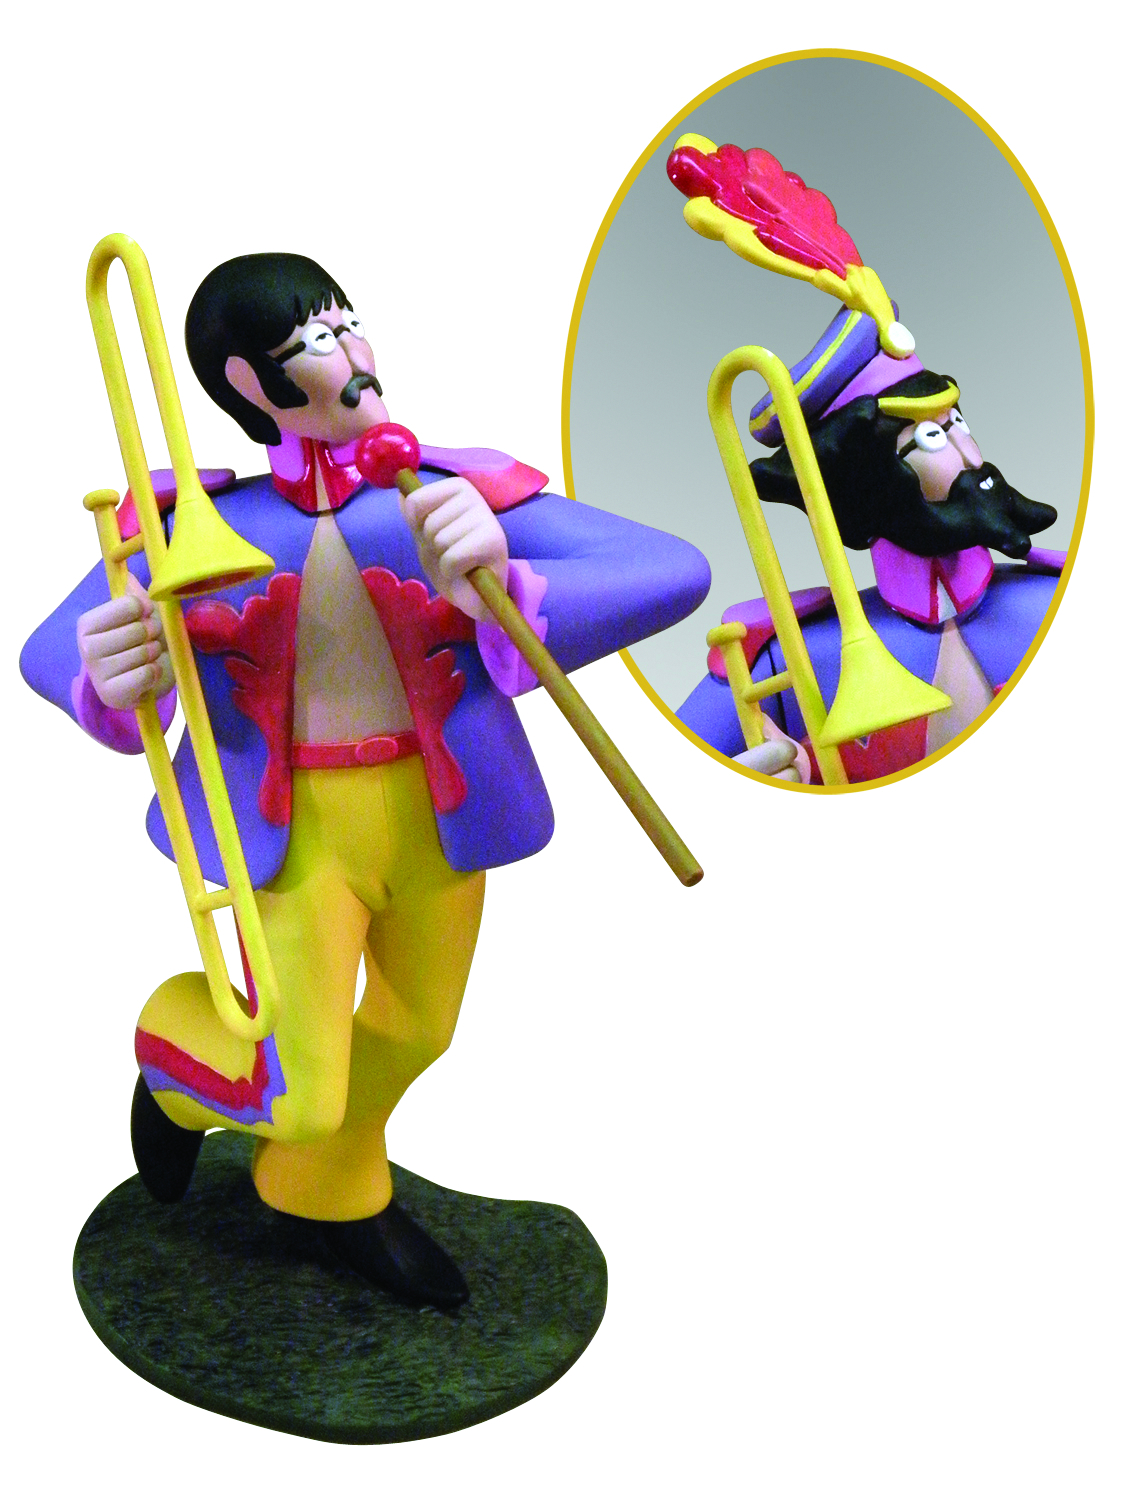 BEATLES YELLOW SUBMARINE JOHN LENNON MODEL KIT